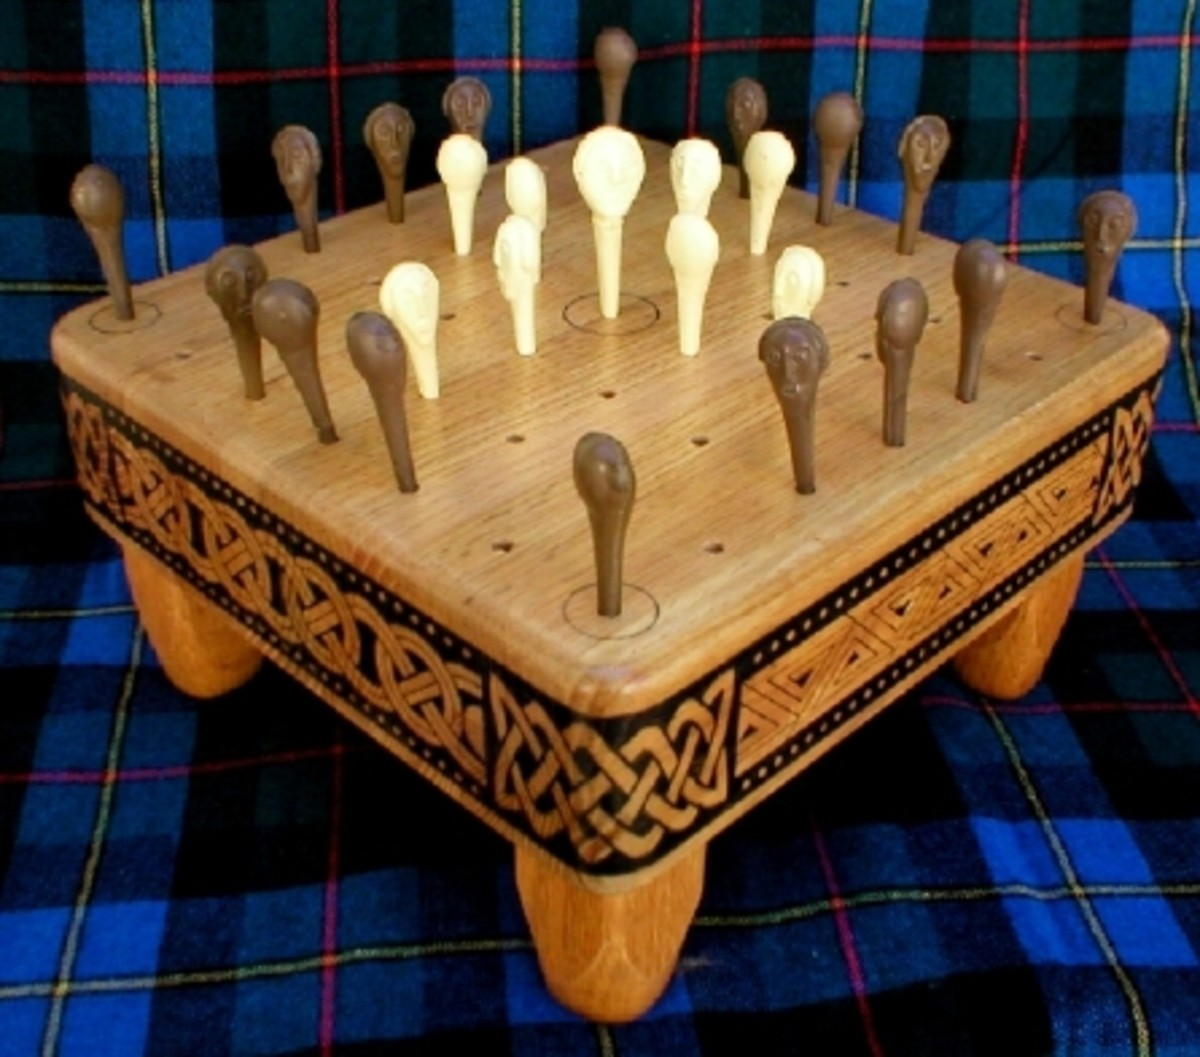 The game of Fidchell -  more a version of Nine Men's Morris than chess